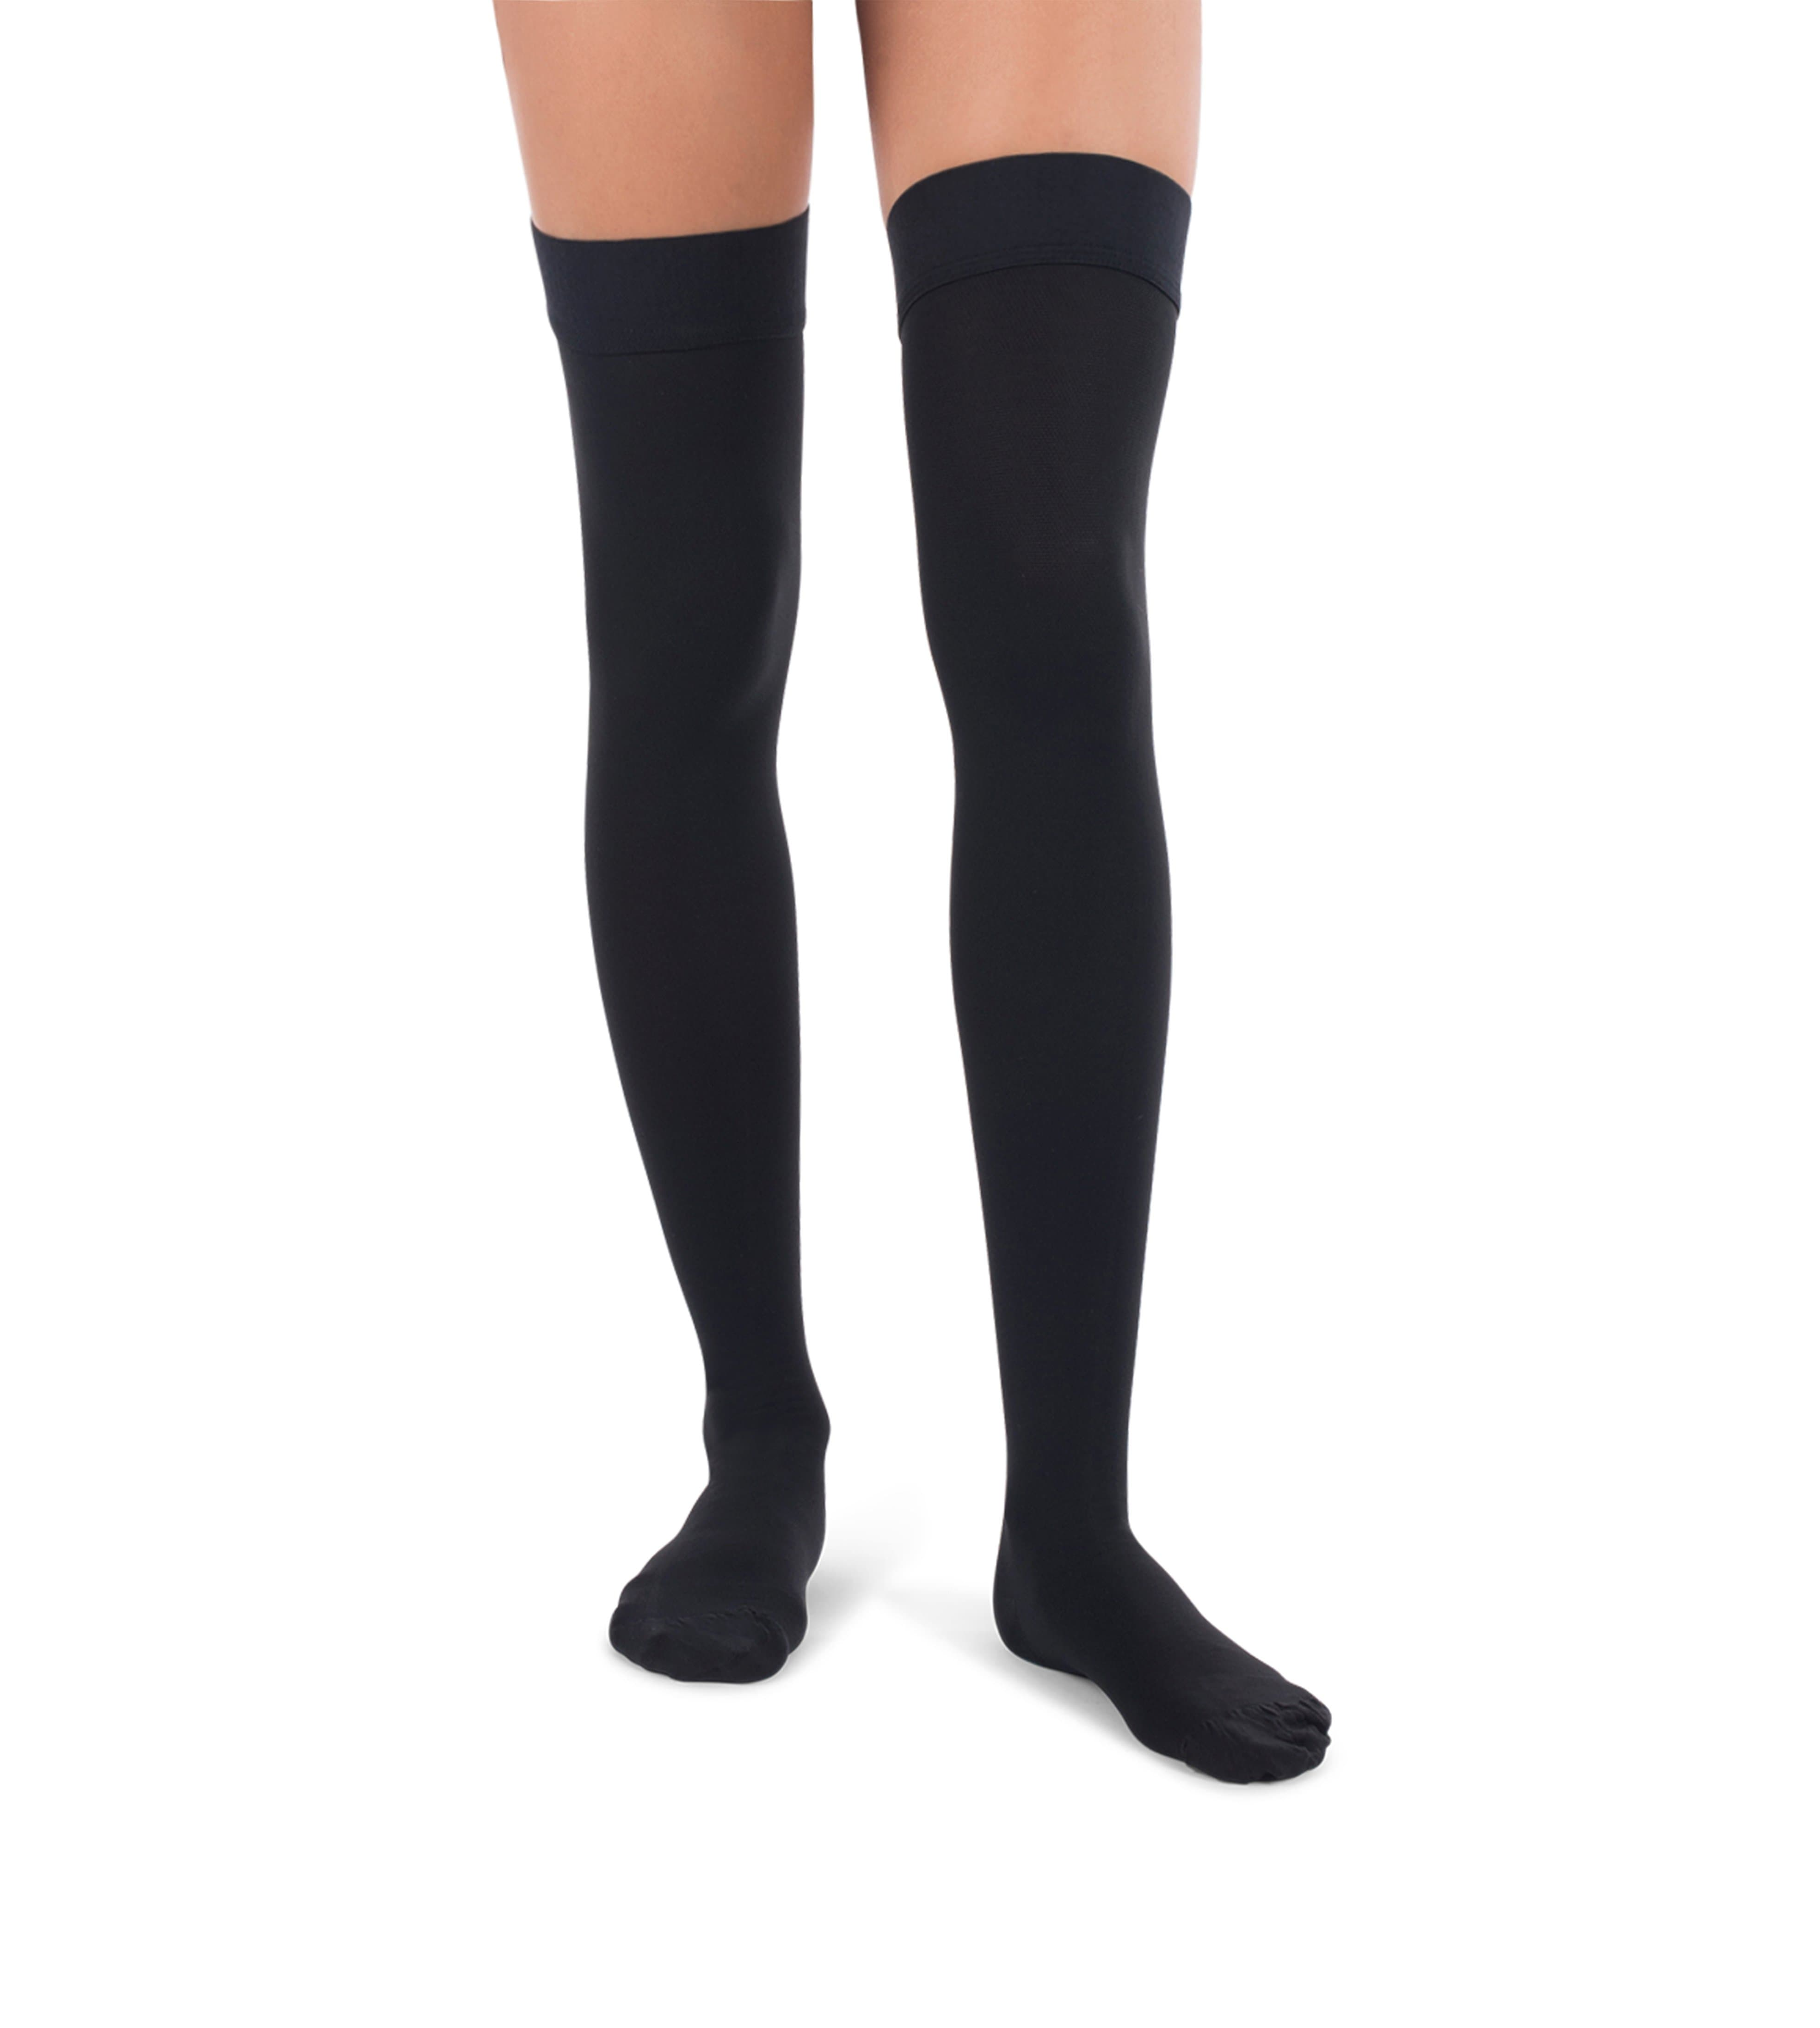 Thigh High Compression Stockings, 20-30mmHg Premiere Surgical Weight Closed Toe - PETITE 265